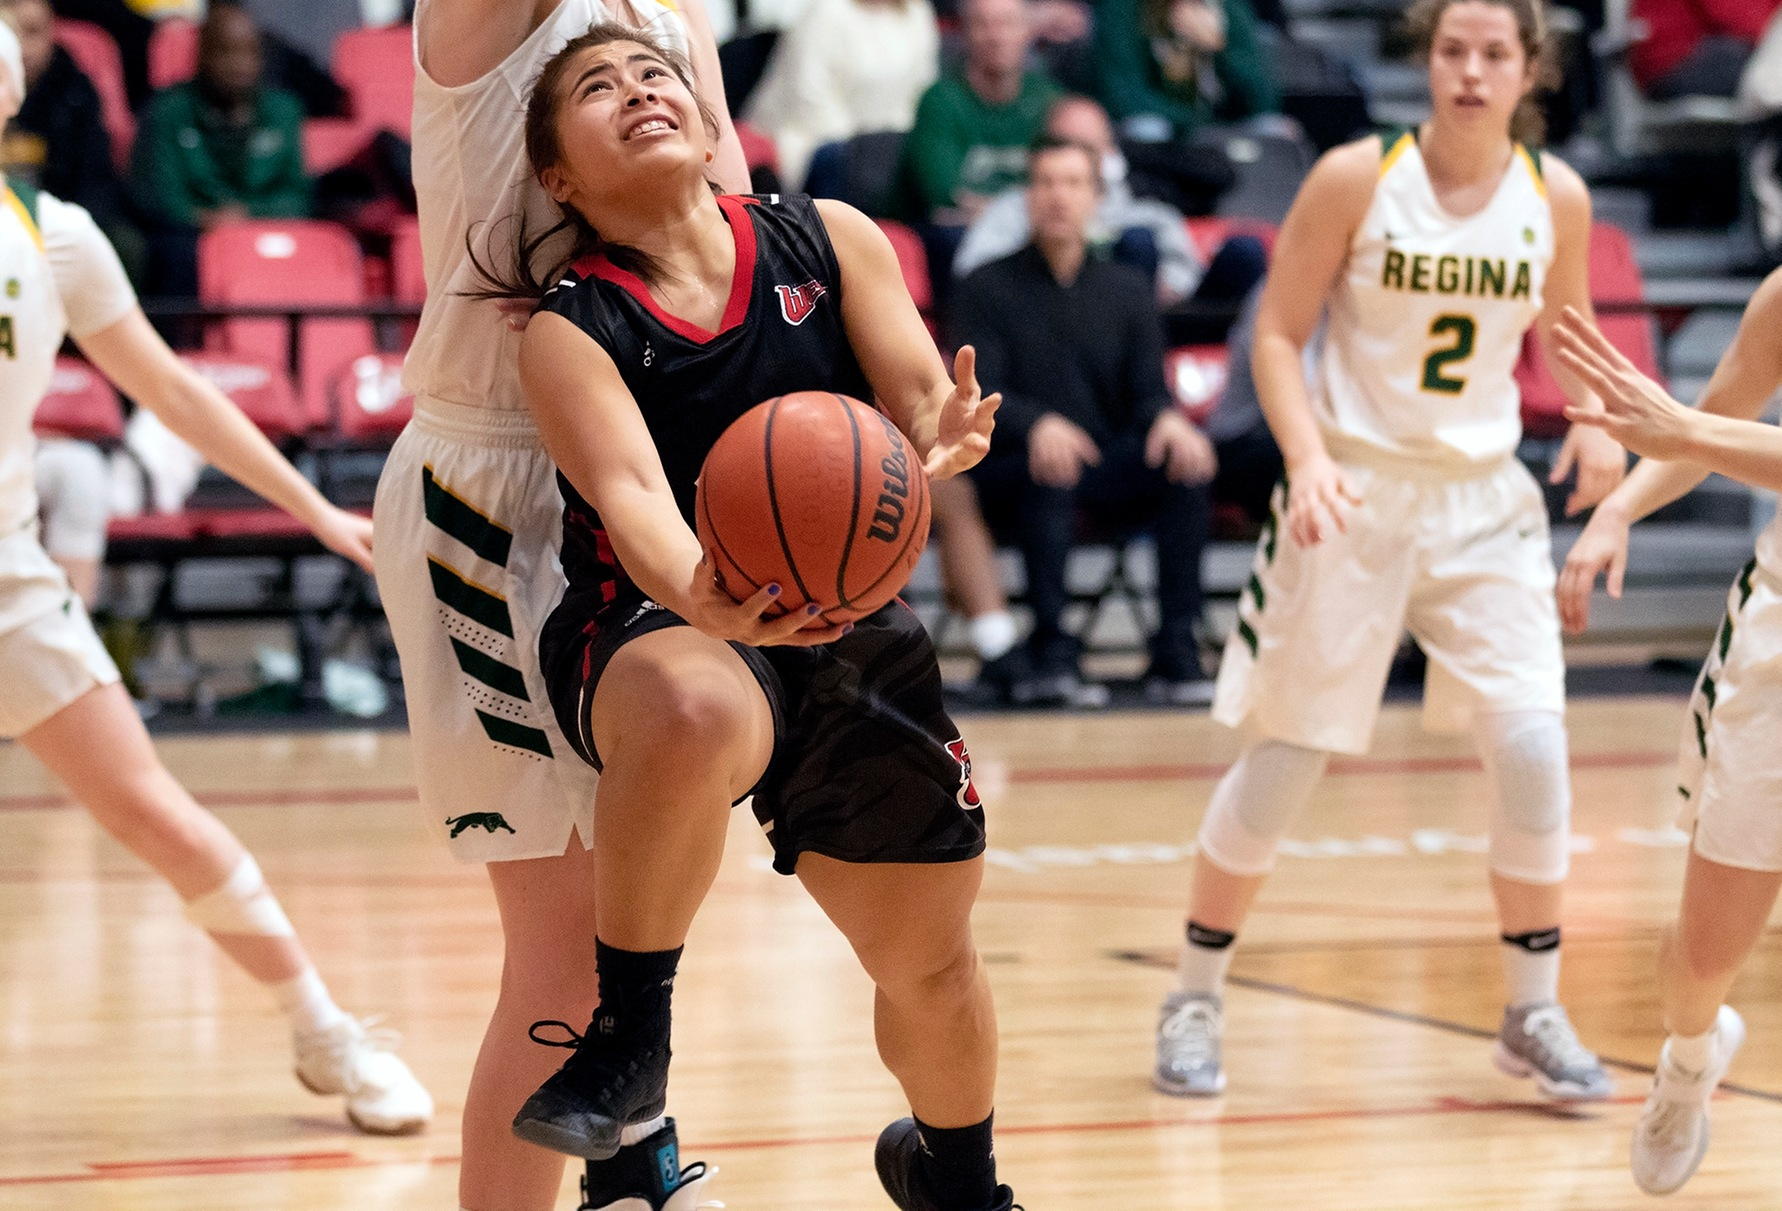 Tournament all-star Farrah Castillo goes to a reverse lay-up against the Regina Cougars in the final of the Wesmen Classic on Sunday, Dec. 30, 2018. (Shanlee McLennan/Wesmen Athletics)